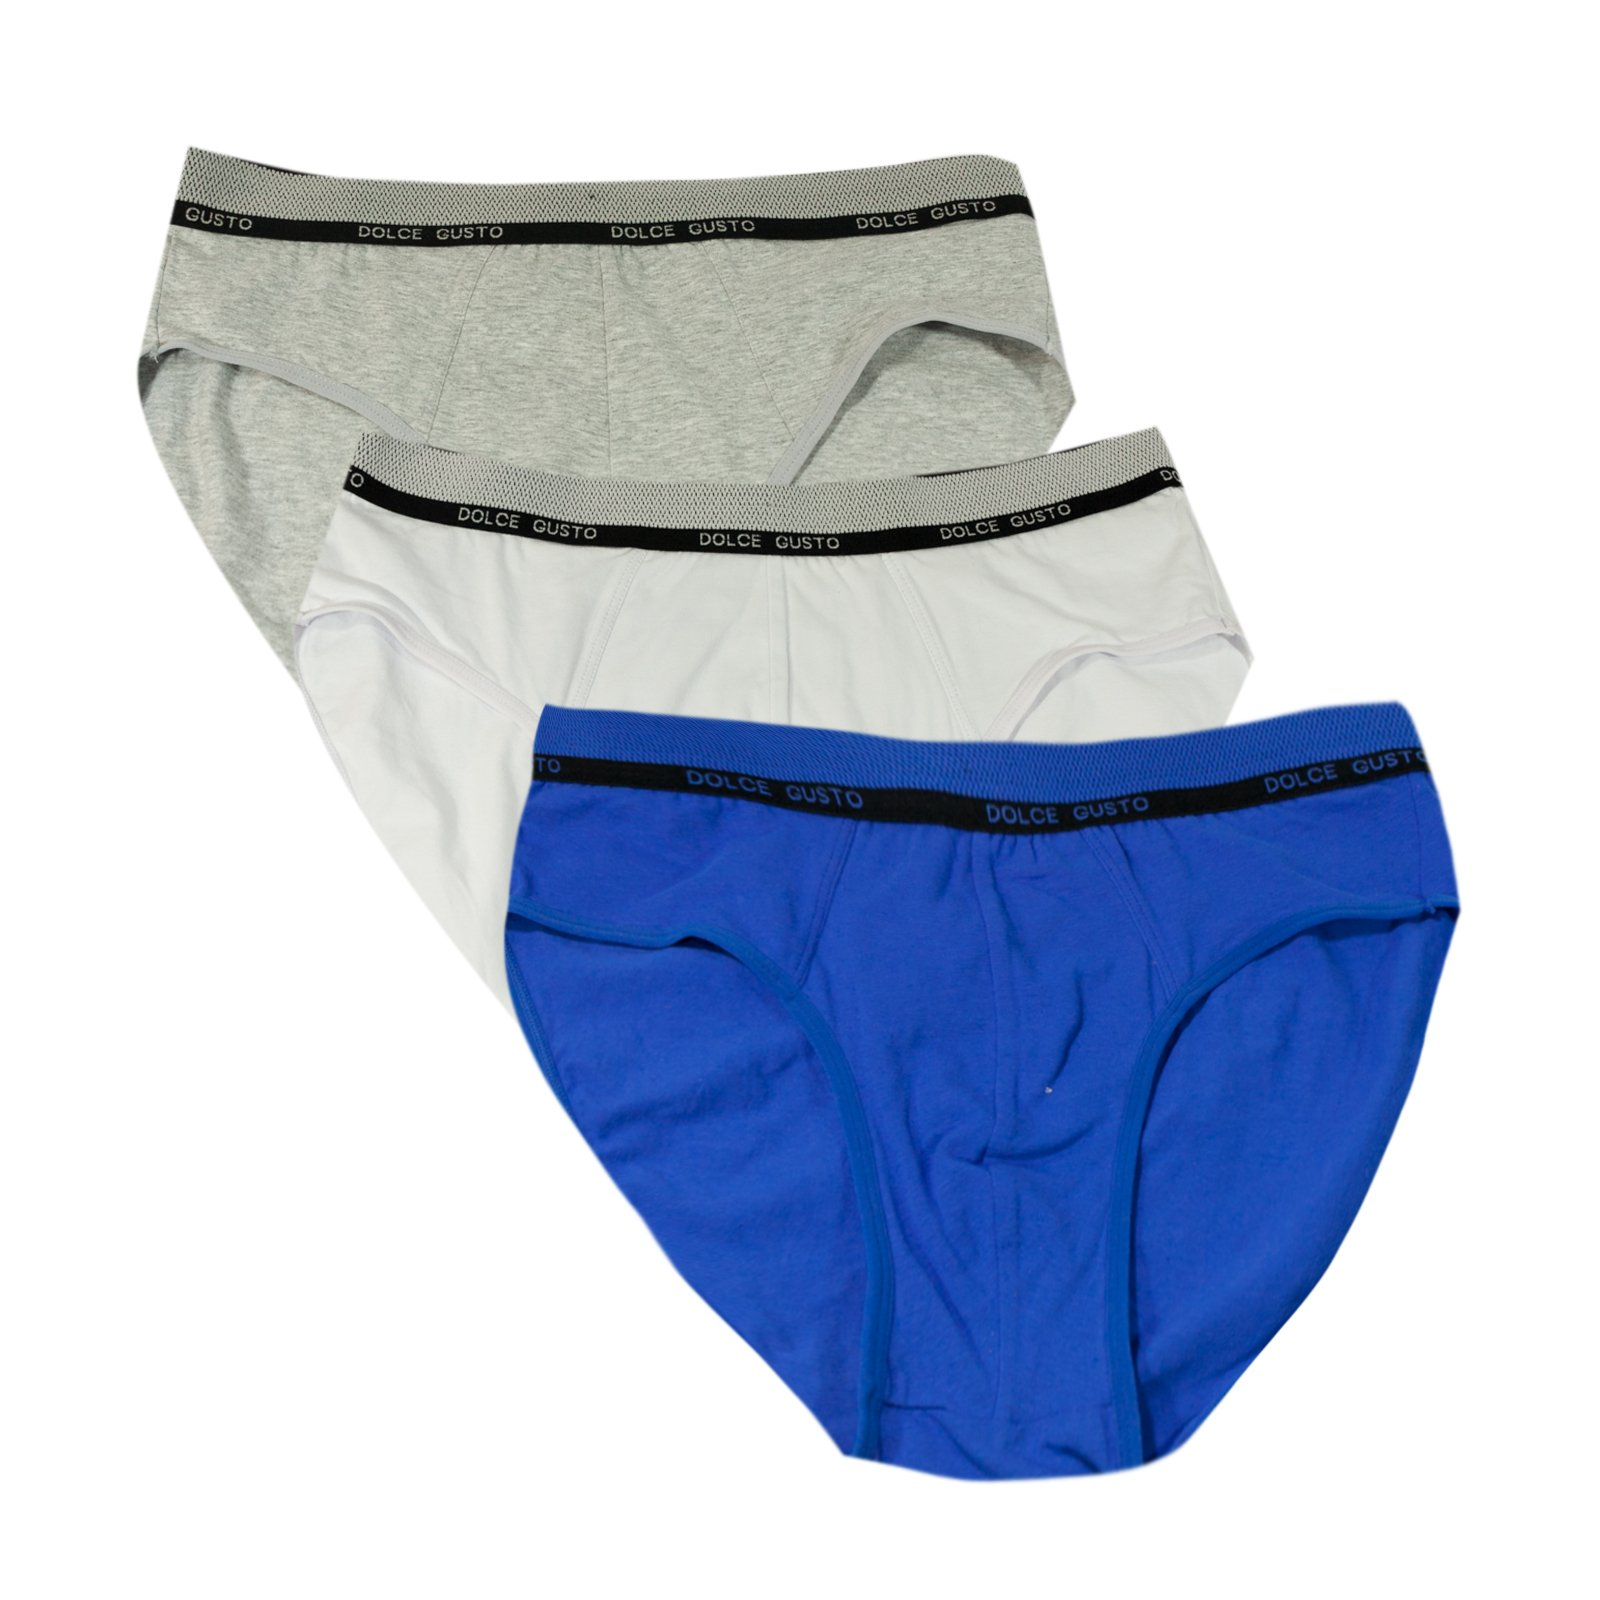 Dolce Gusto Men's Boxers Brief 3-Pack - XXXL by Love Hana (Image #2)